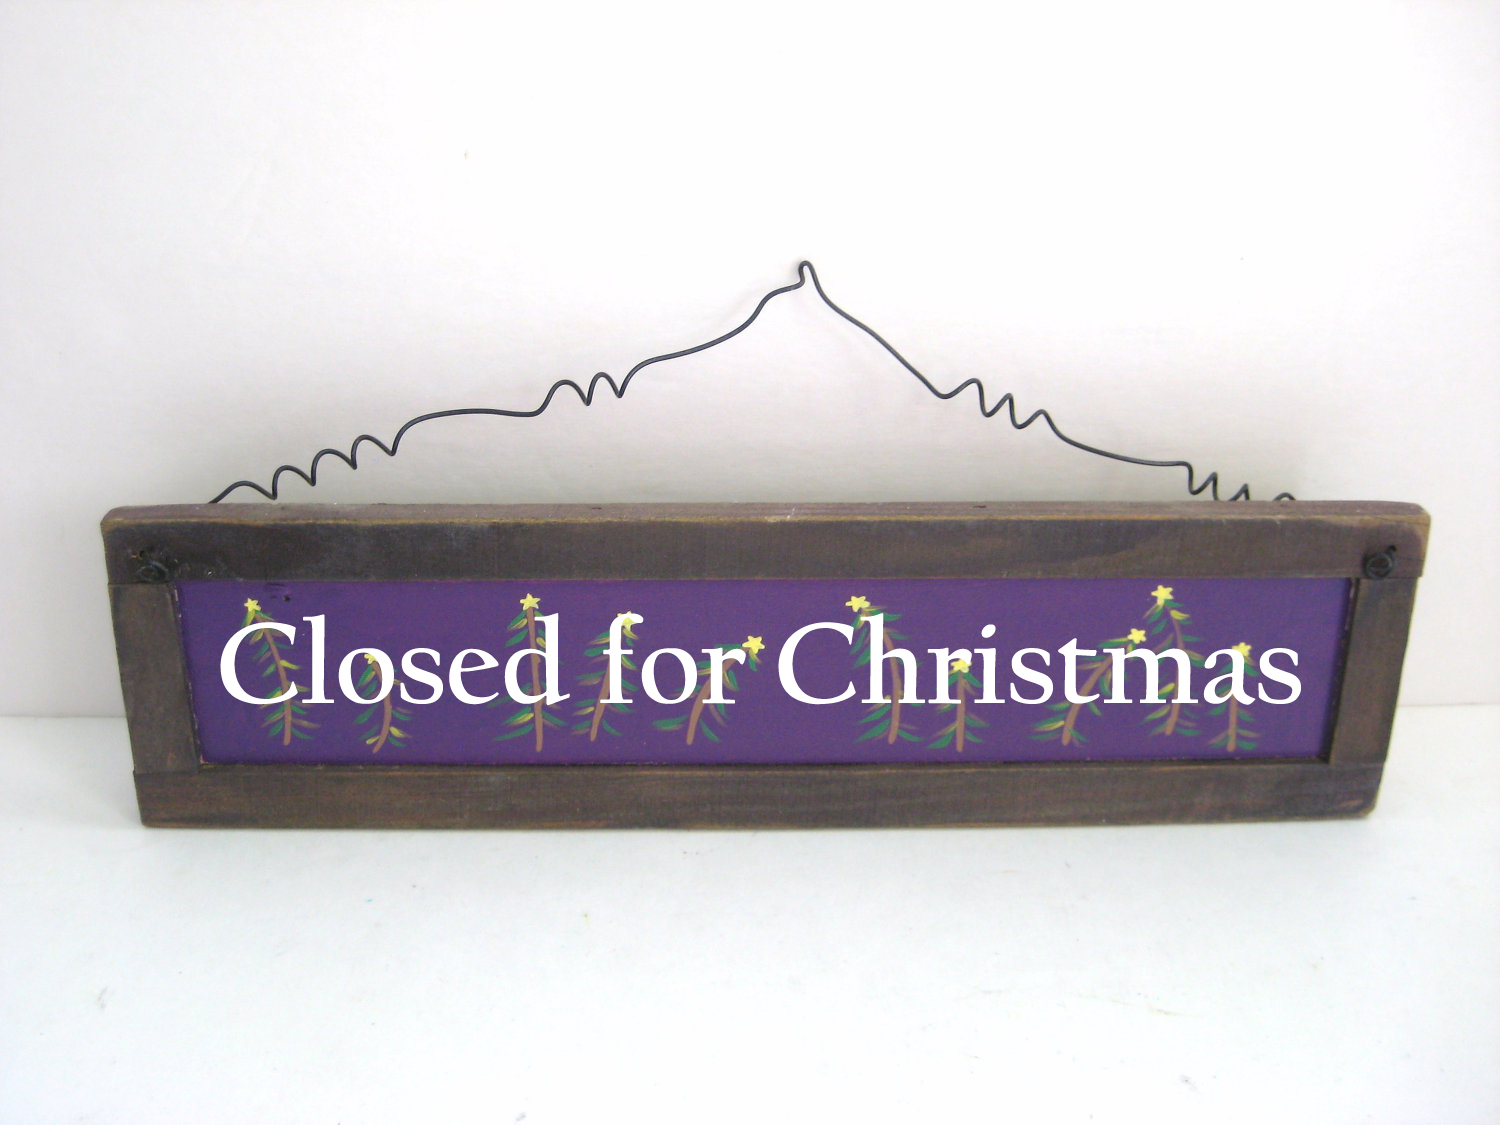 Closed for Christmas.